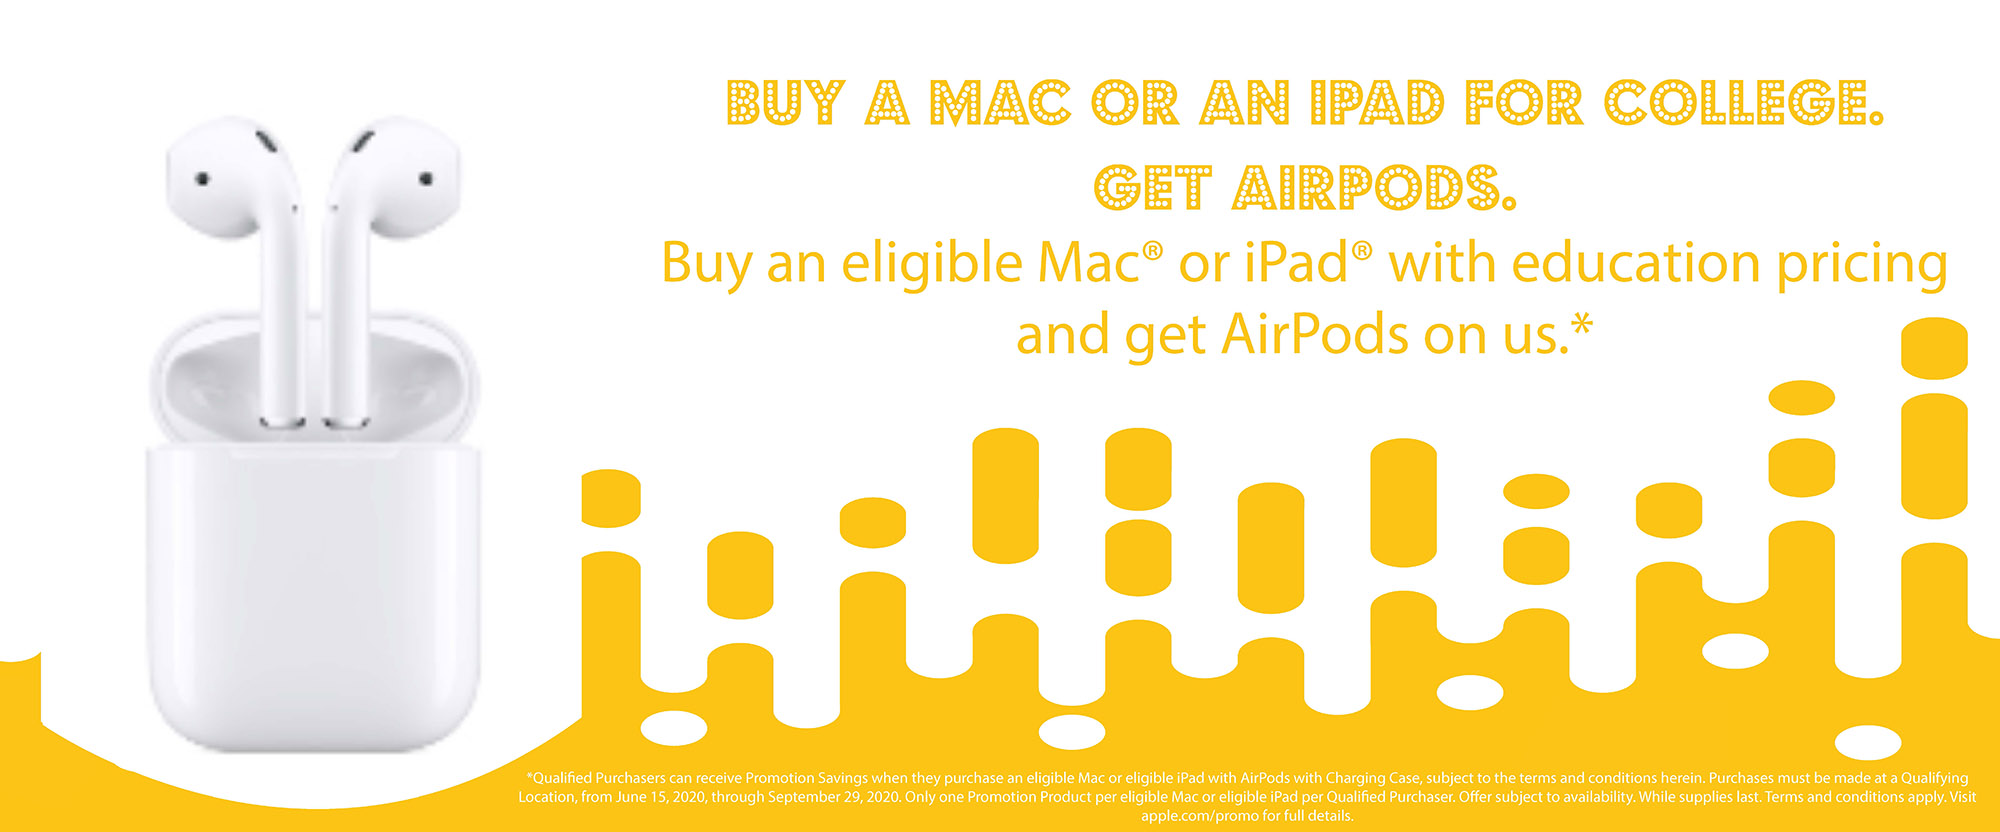 free airpods with qualifying purchase